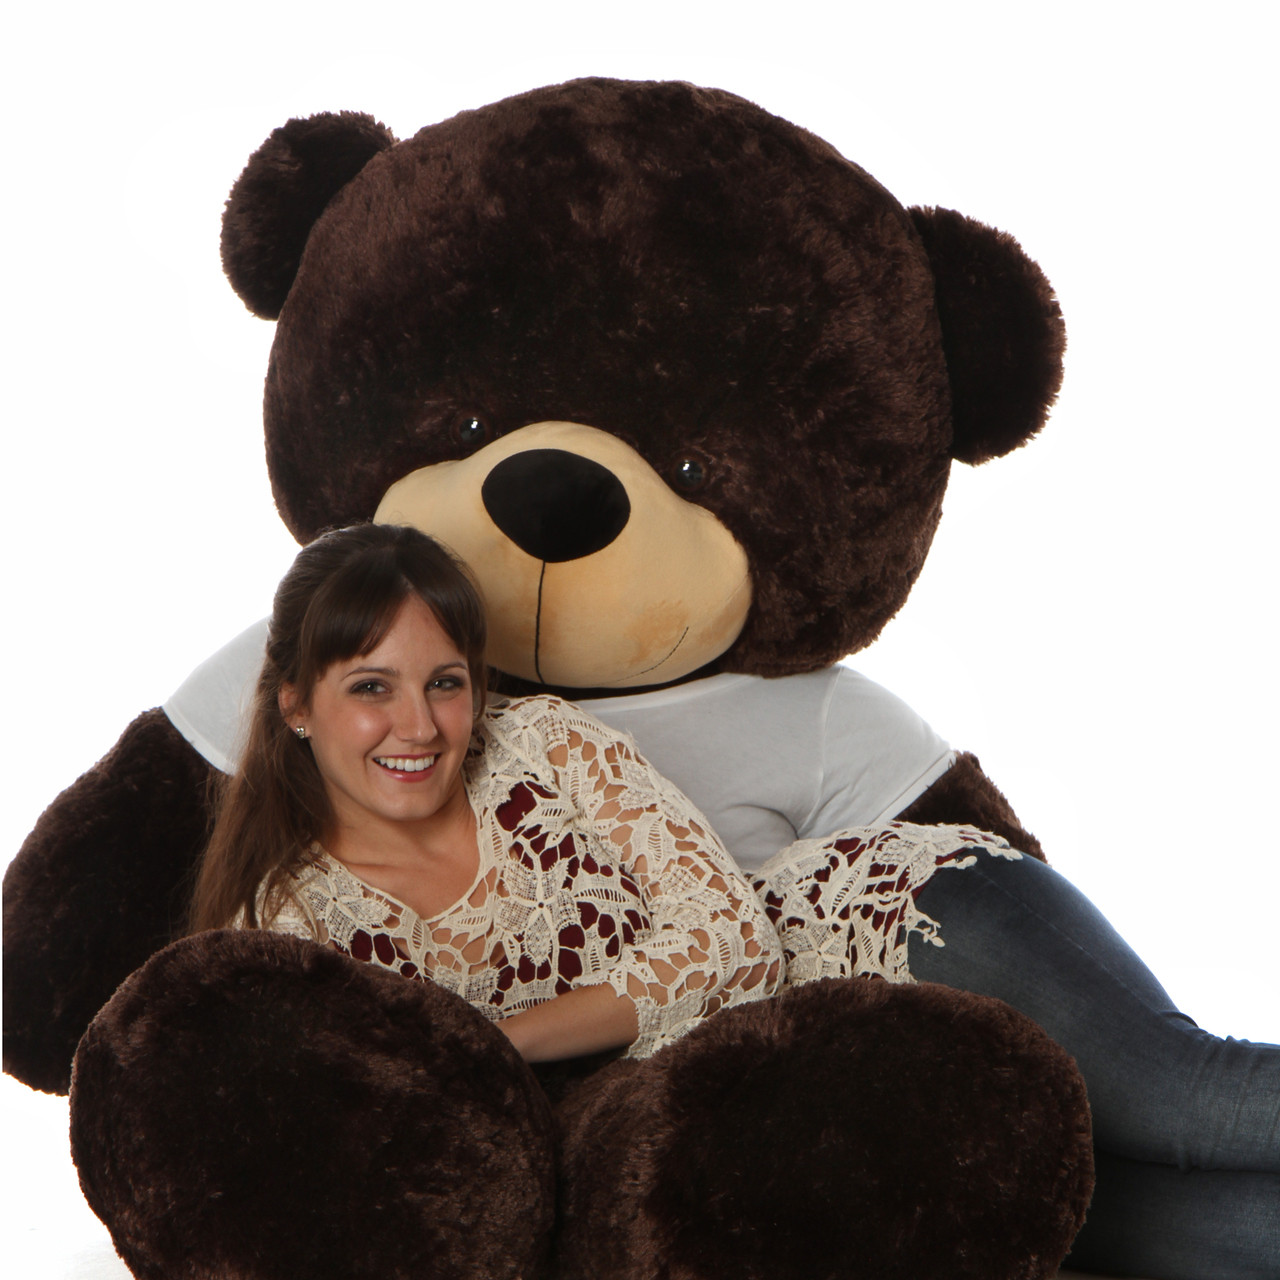 72in brownie cuddles giant chocolate brown teddy bear in cute happy valentines day t shirt - Giant Teddy Bears For Valentines Day